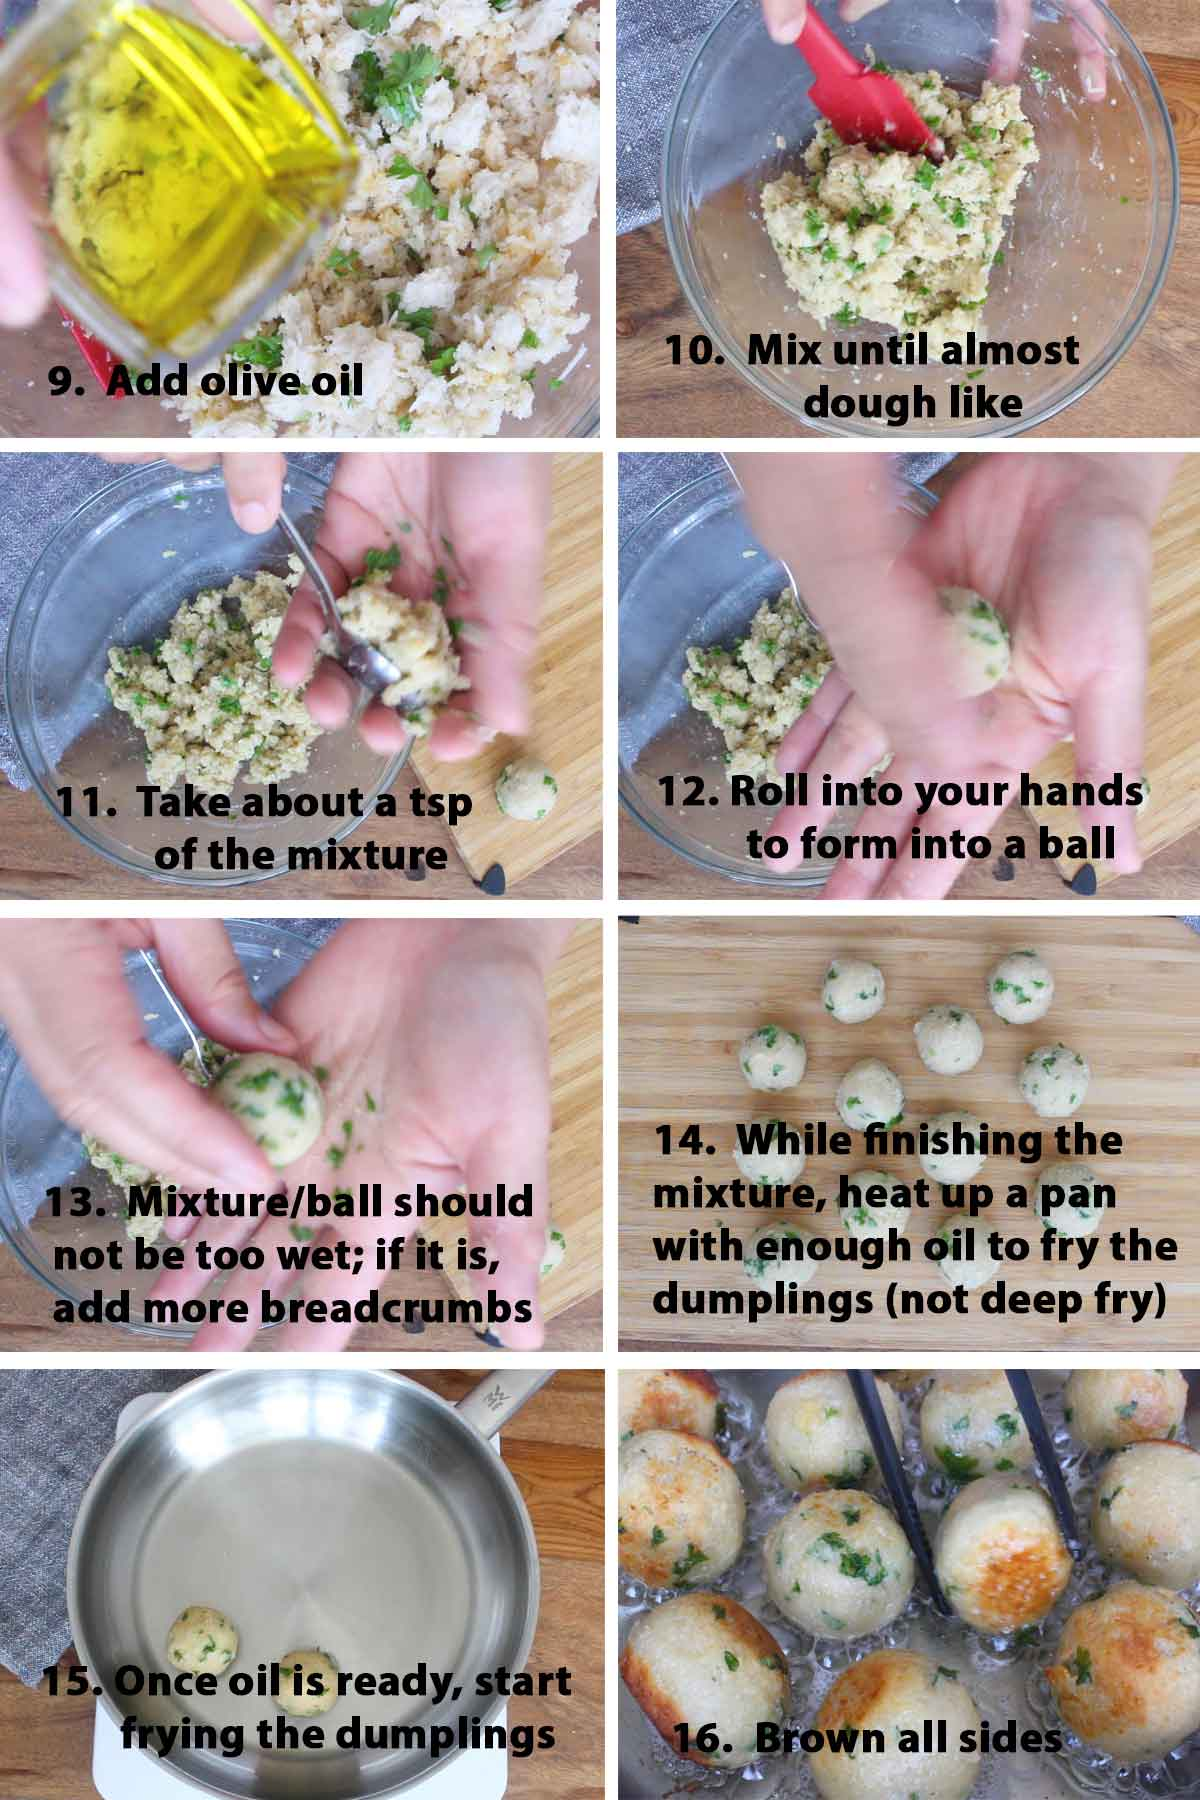 Second part of a collage of images showing the step by step process on how to make Italian Bread & Cheese Dumplings. These bread dumplings are quite addictive and they can be served as appetizers or as a light meal on its own!